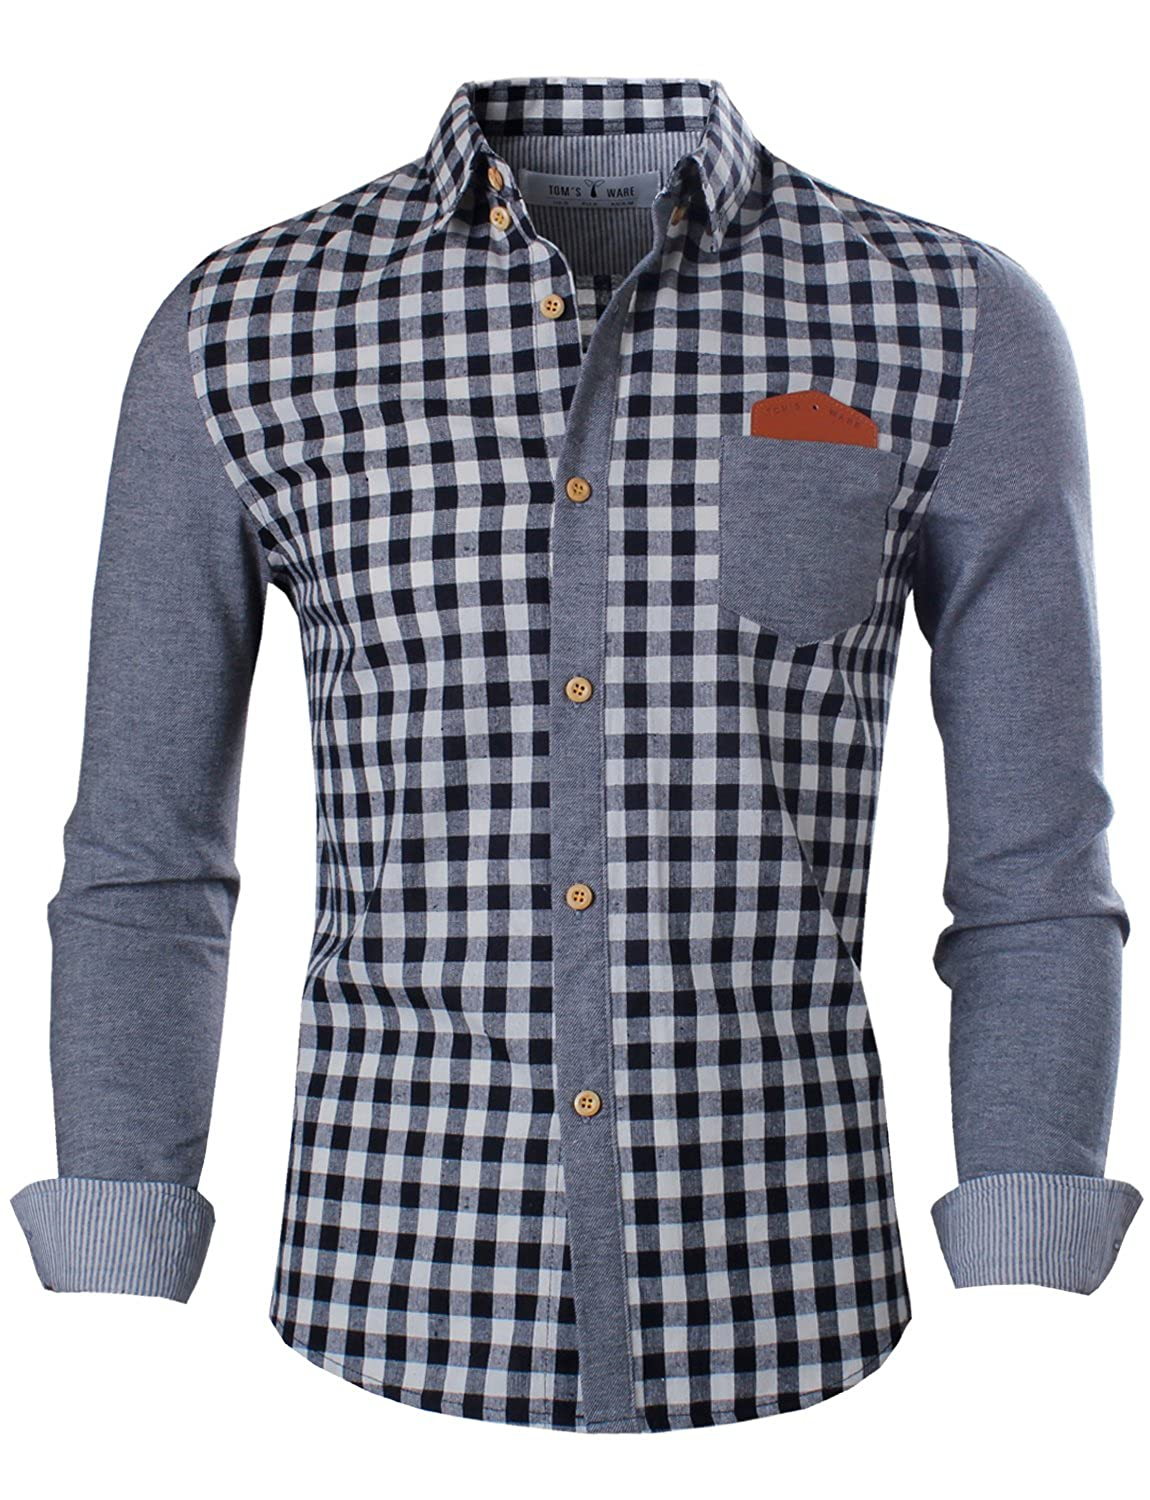 Tom's Ware Mens Trendy Slim Fit Two-toned Checkered Longsleeve Shirt at Amazon Men's Clothing store